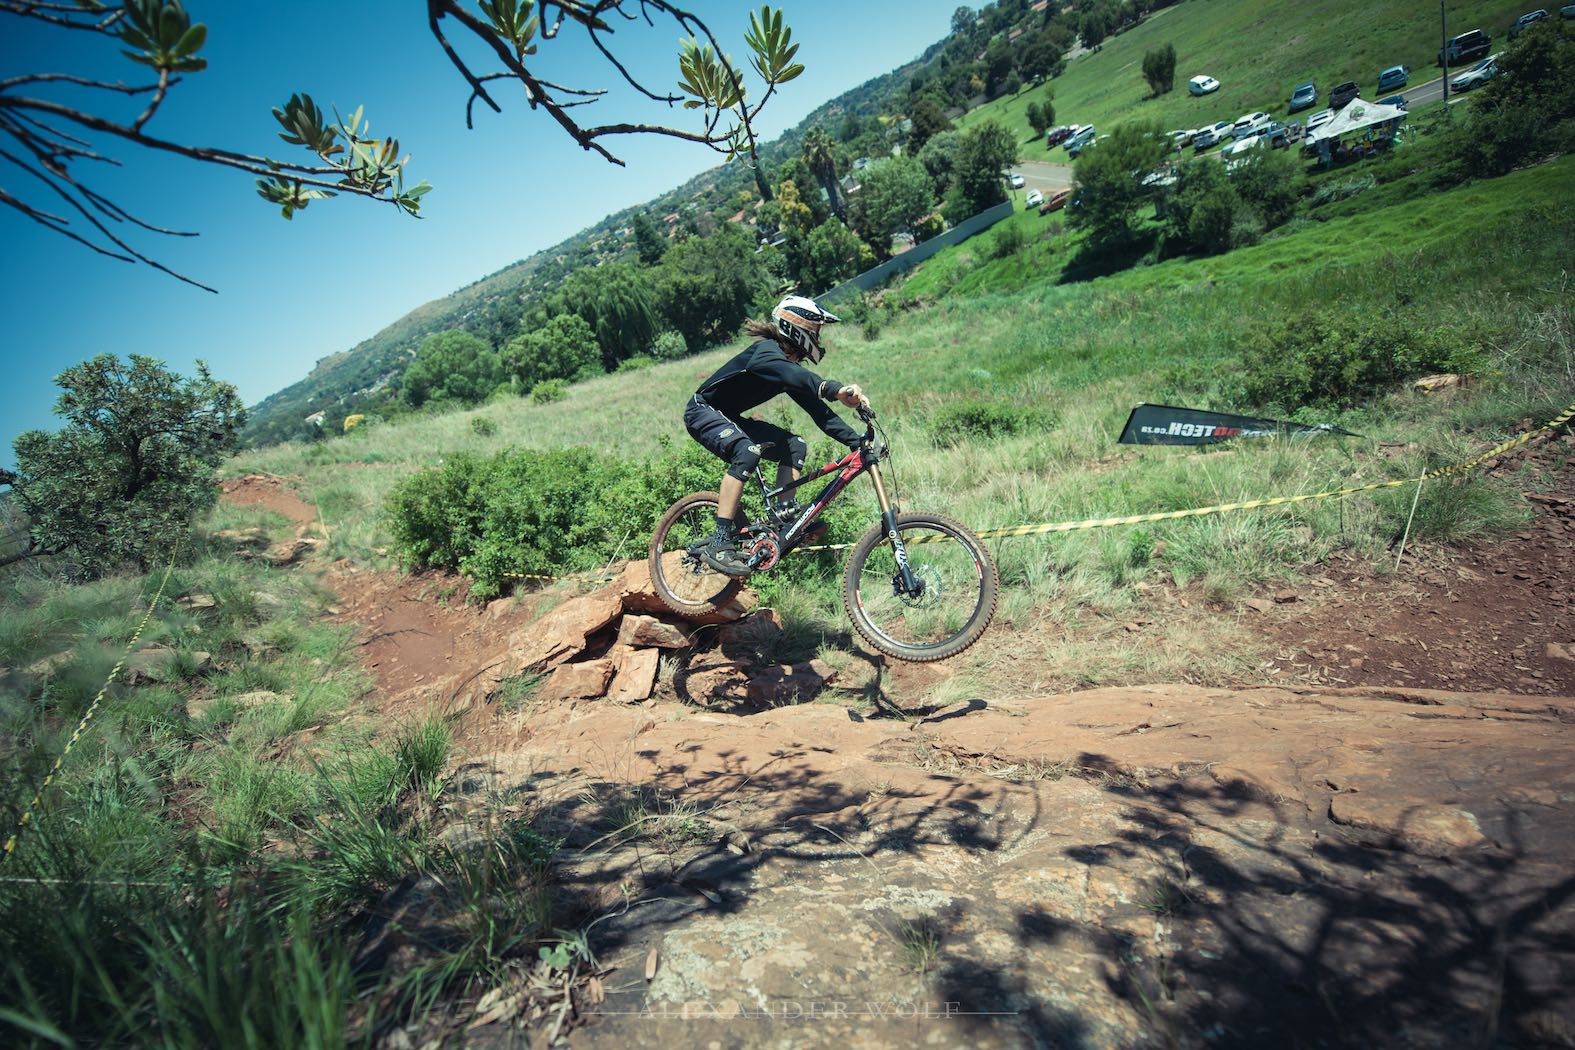 Frank Meyer winning the Downhill MTB at the Dustin Rudman Invitation 3